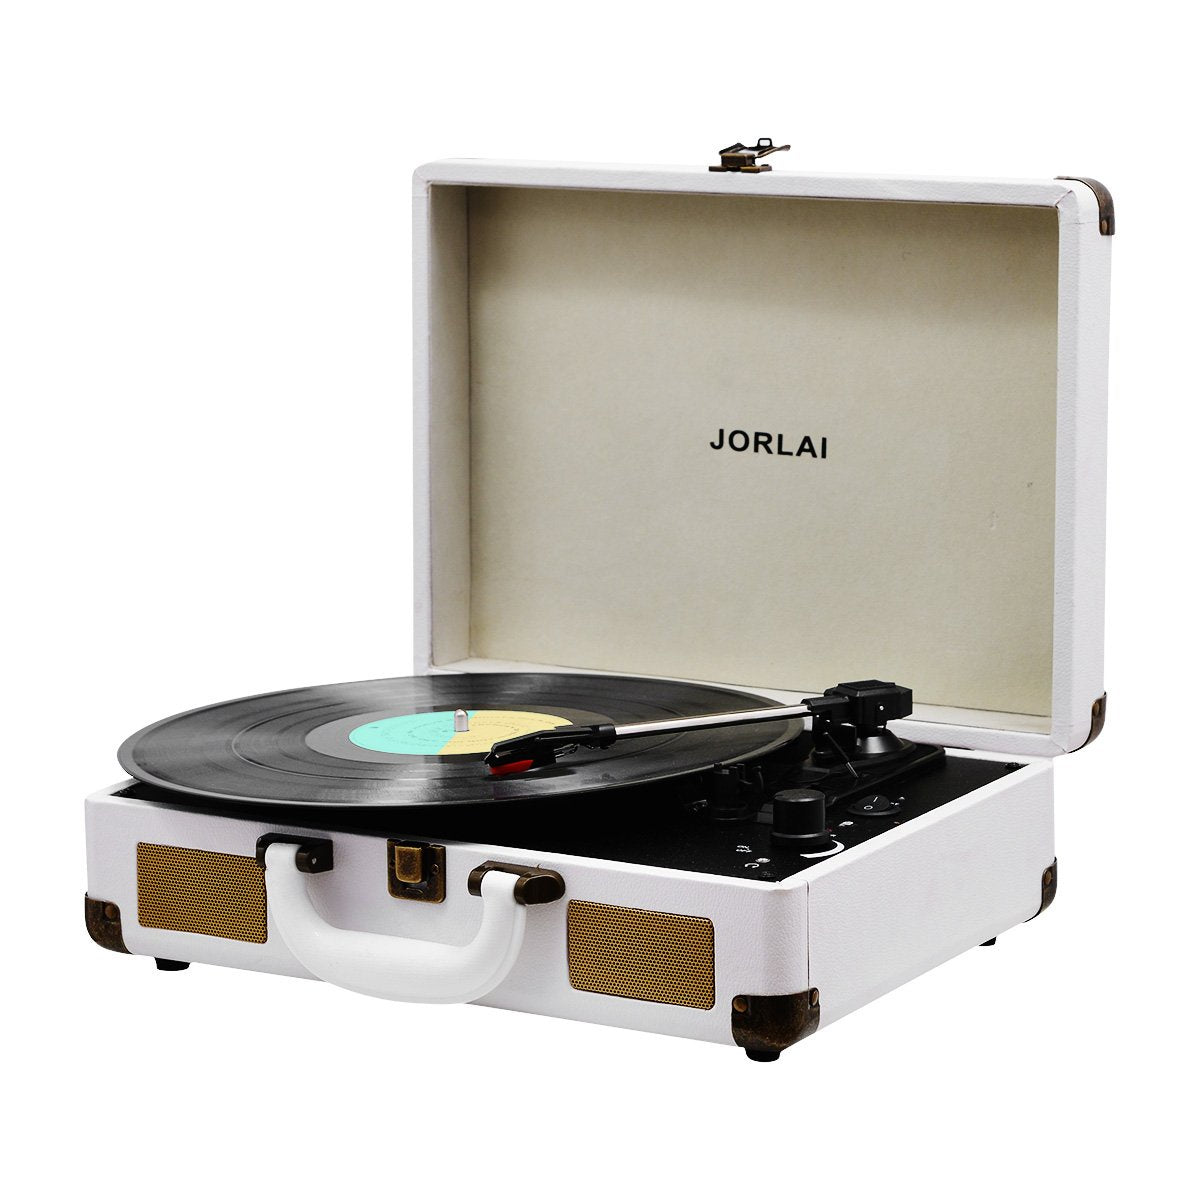 (NEW) Crosley - JORLAU 3-Speed Record Player with Built-In Suitcase Speakers and Vinyl to MP3 Compatibility